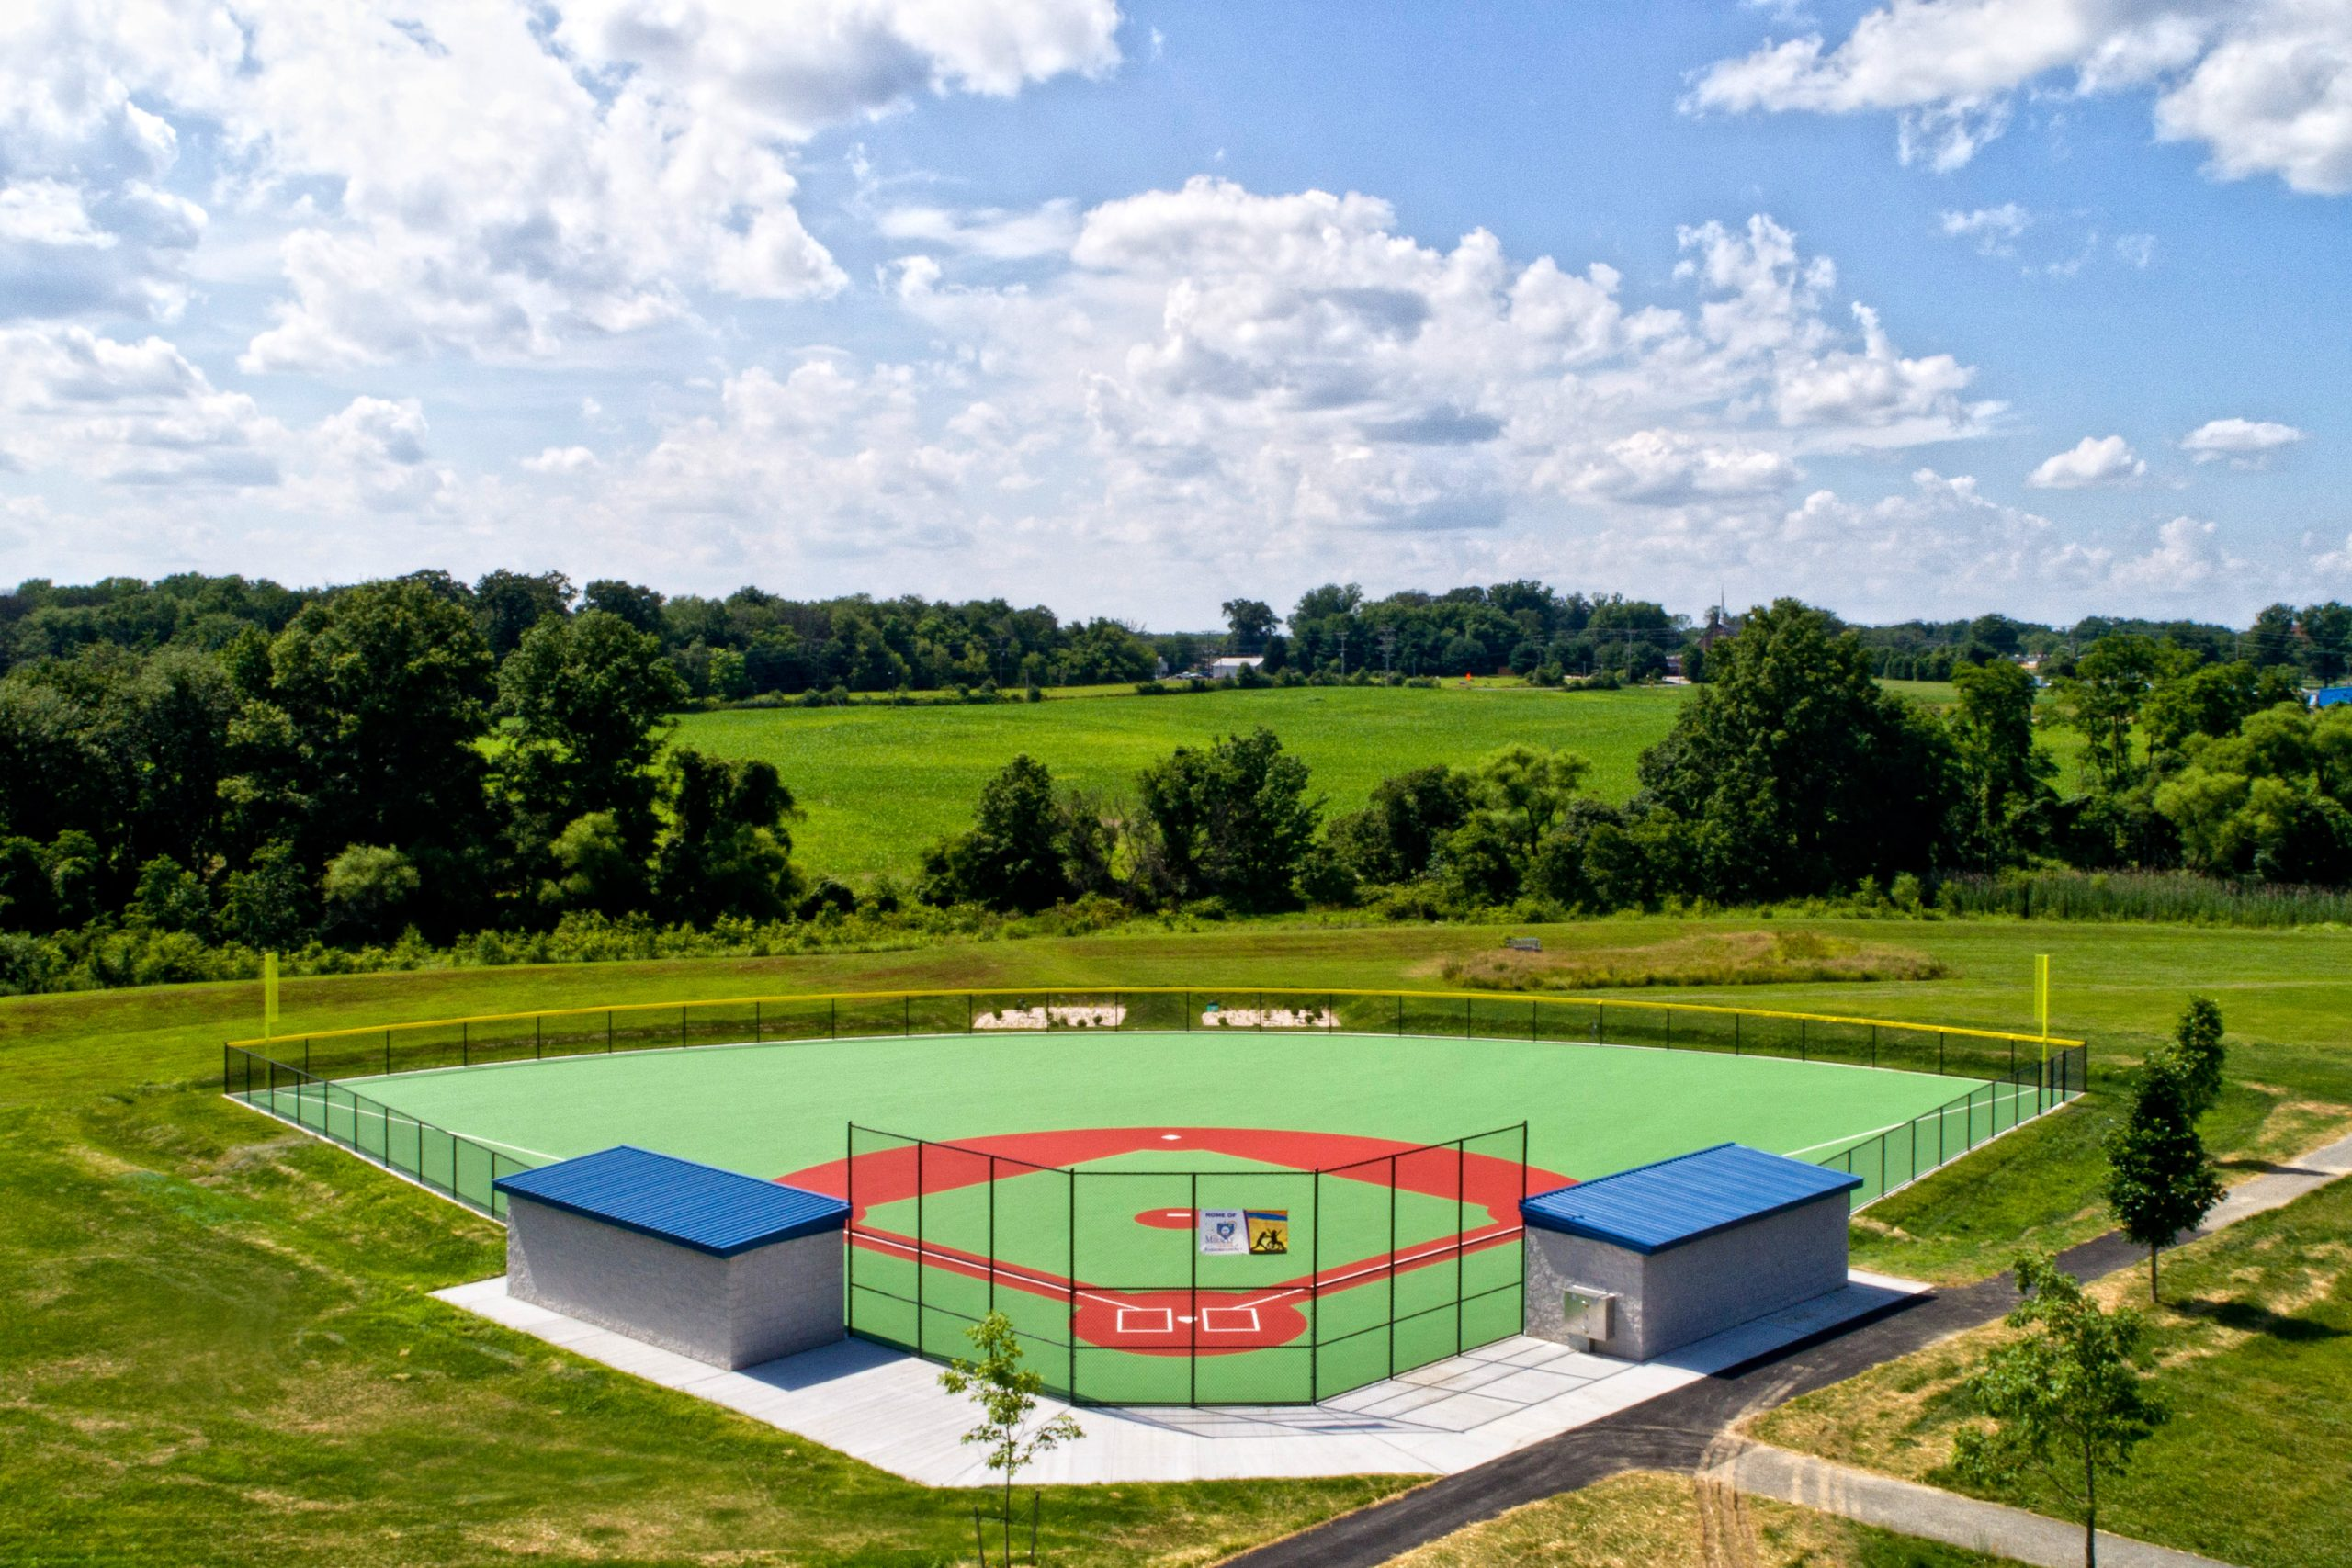 Miracle League of Harford County Ball Field photographed by Commercial photographers Robin Sommer and Bill Rettberg of MidAtlantic Photographic LLC